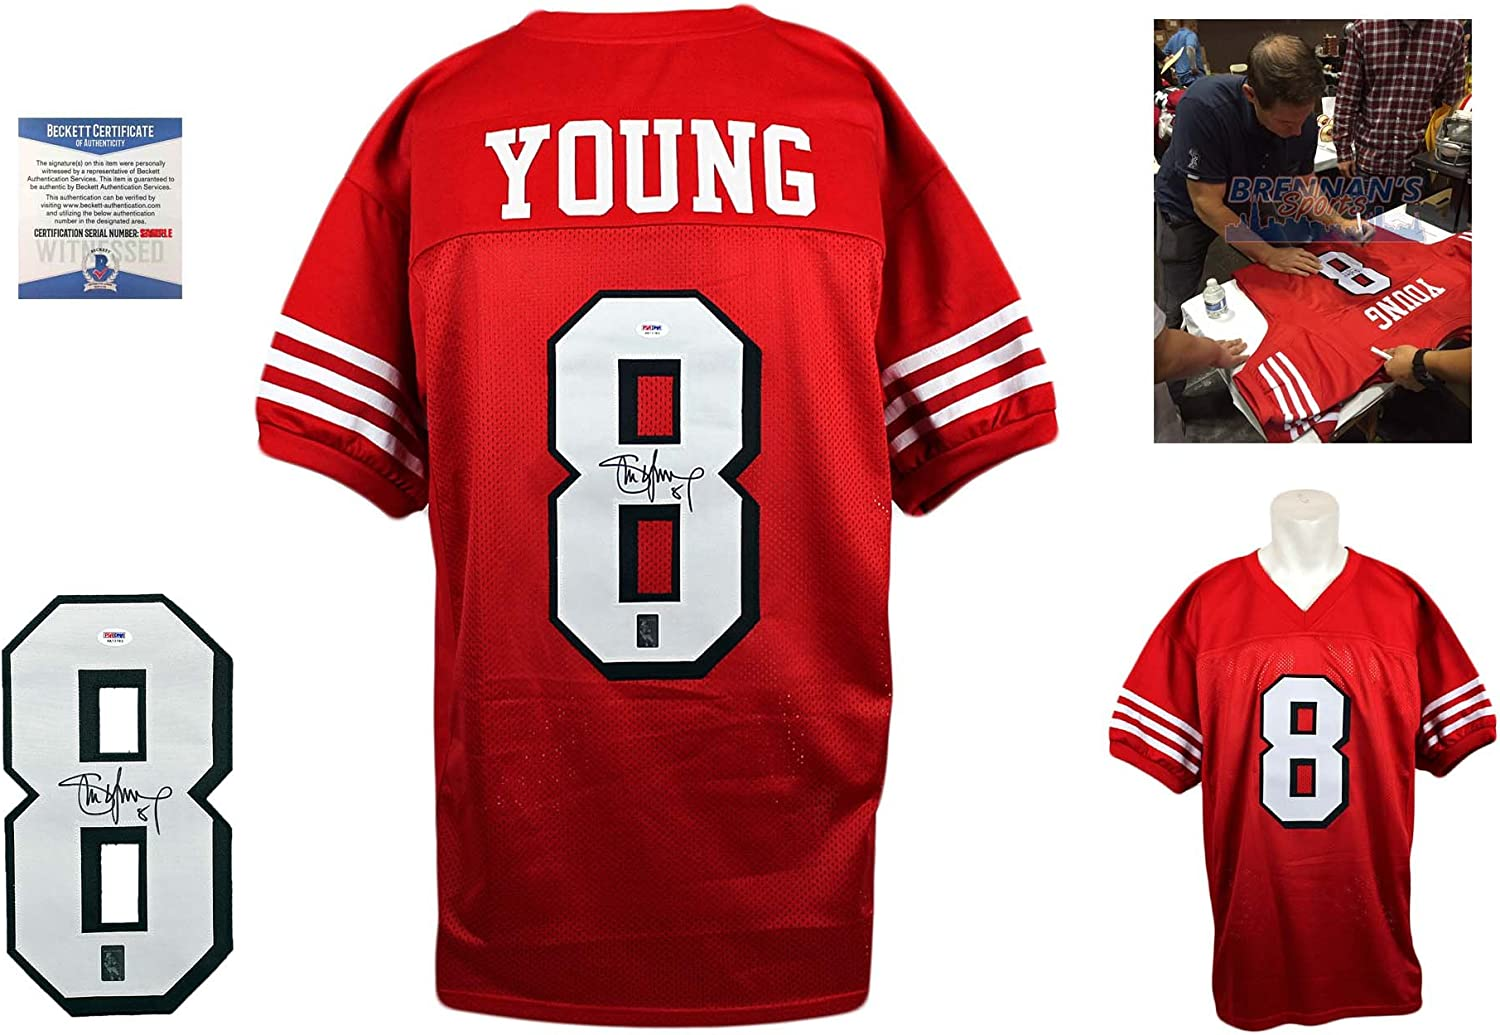 Steve Young Signed Custom Jersey - Beckett - Autographed w/ Photo - TB